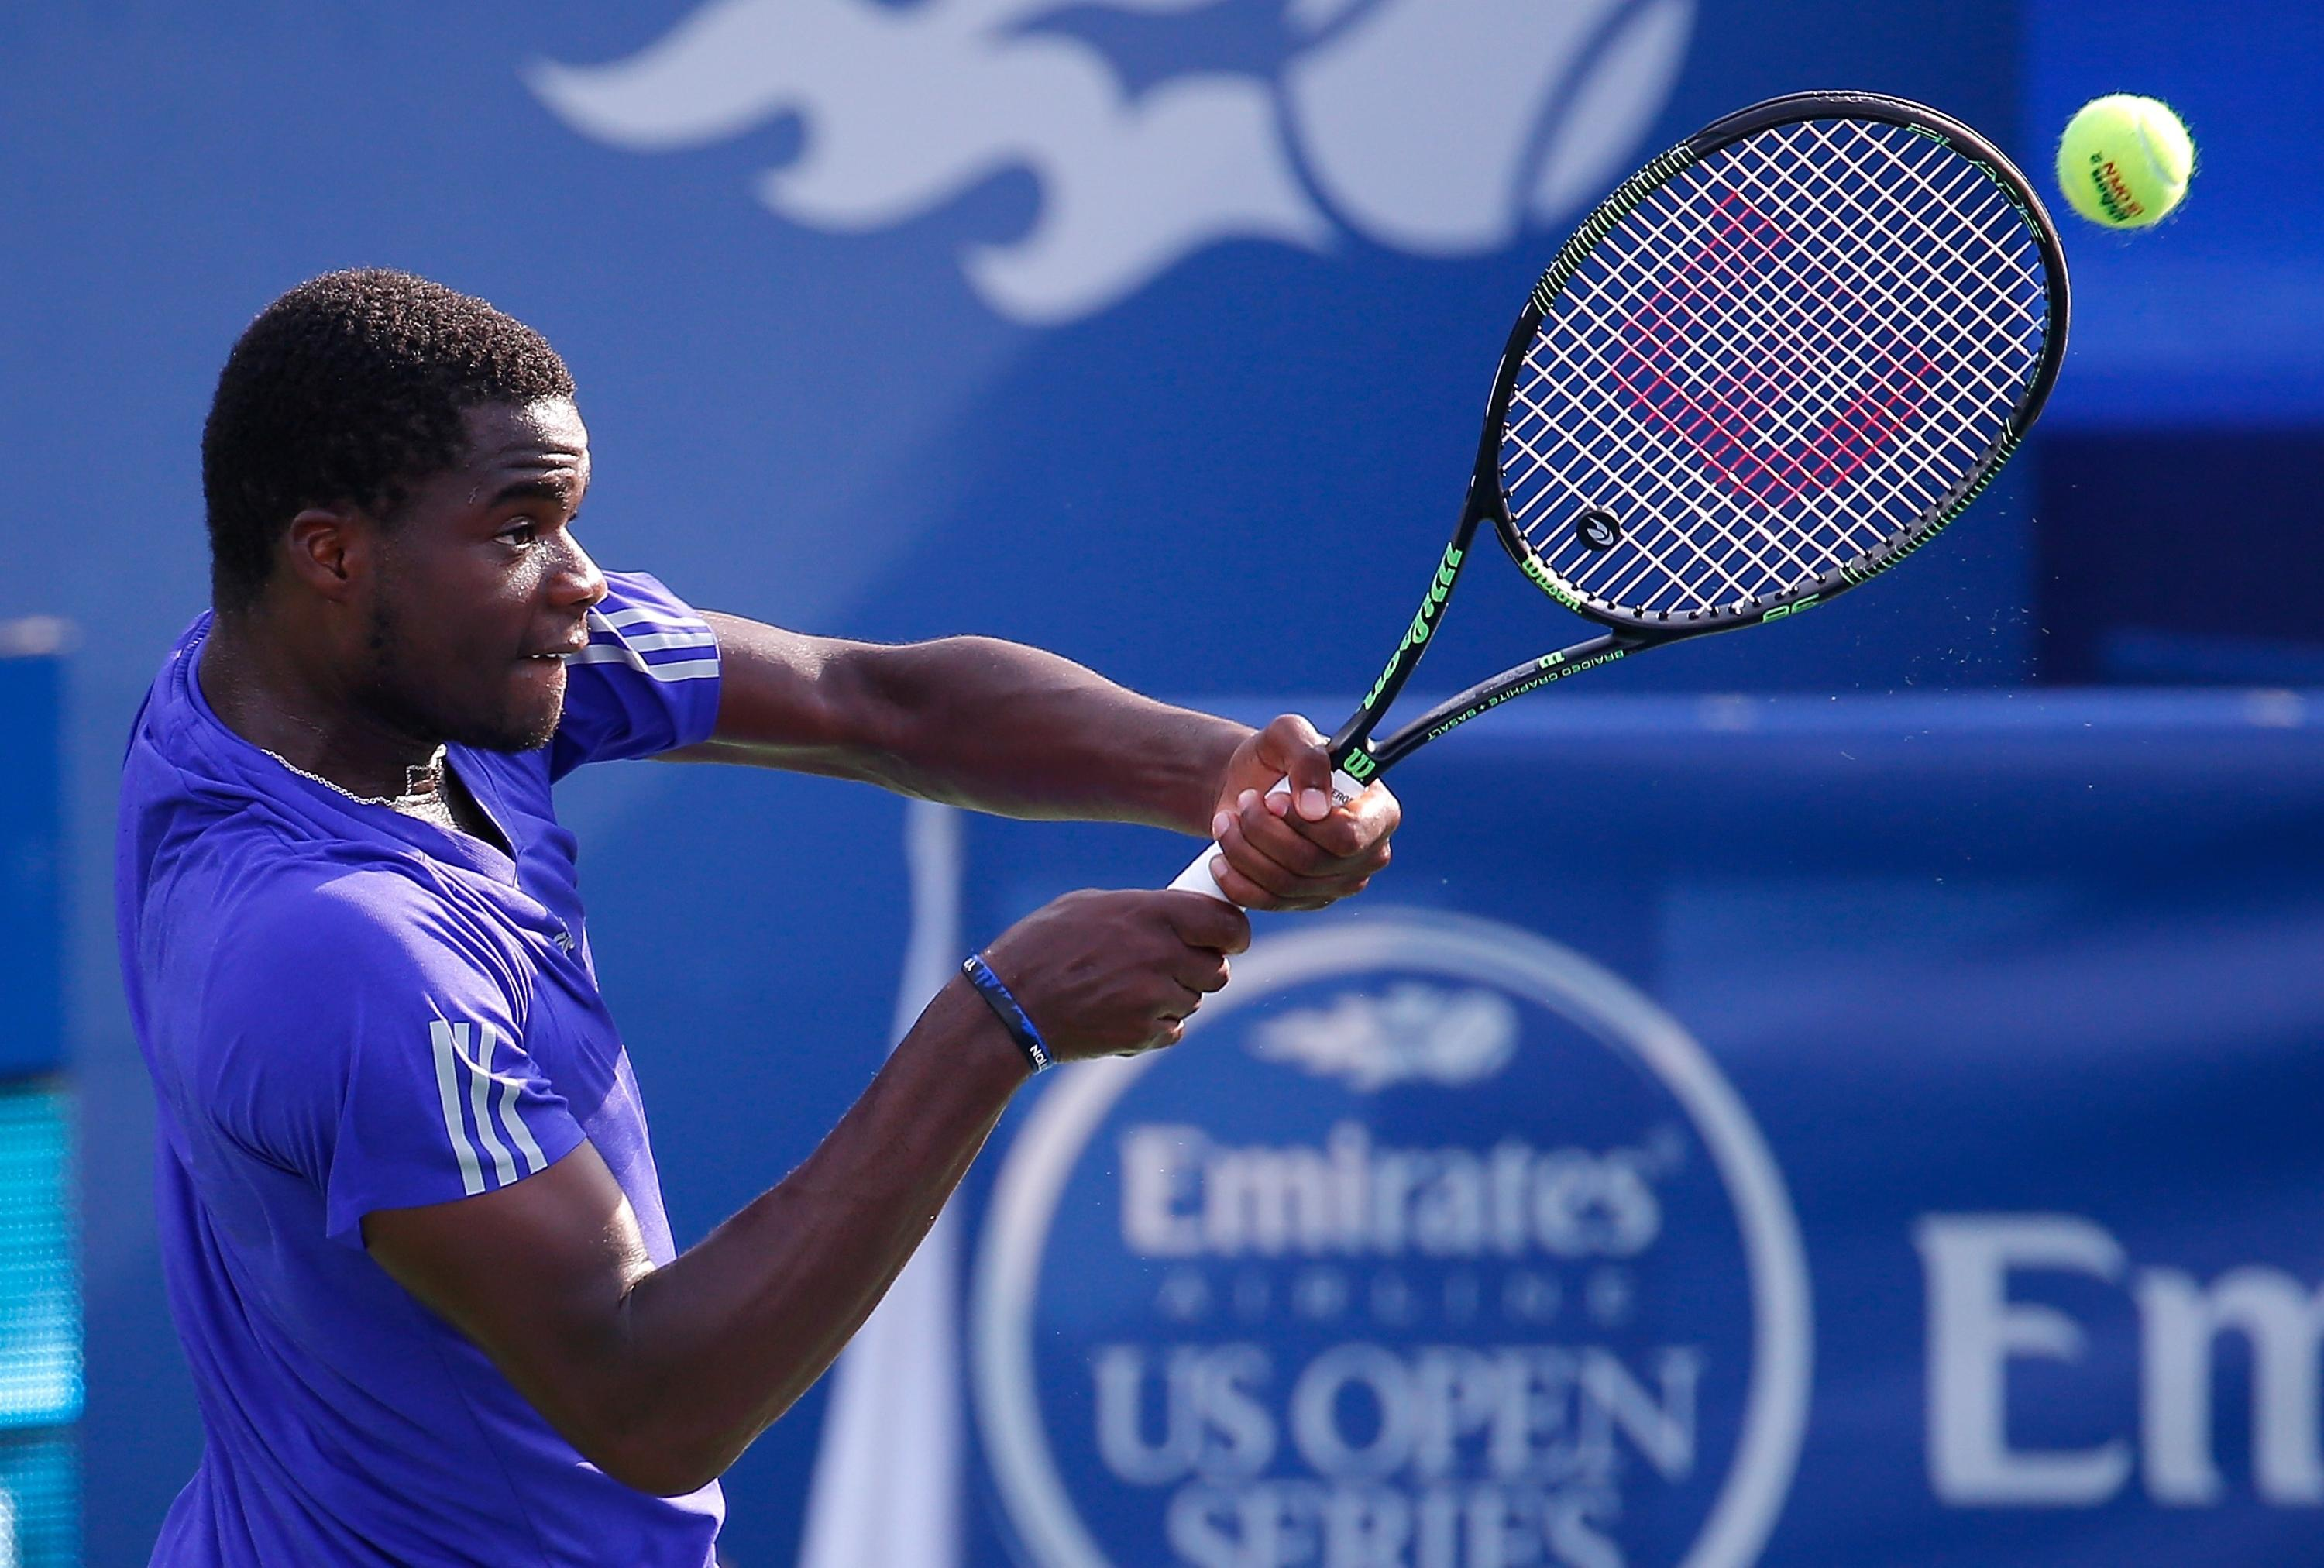 Teenage takeover: Most teens in U.S. Open men's draw since 1990